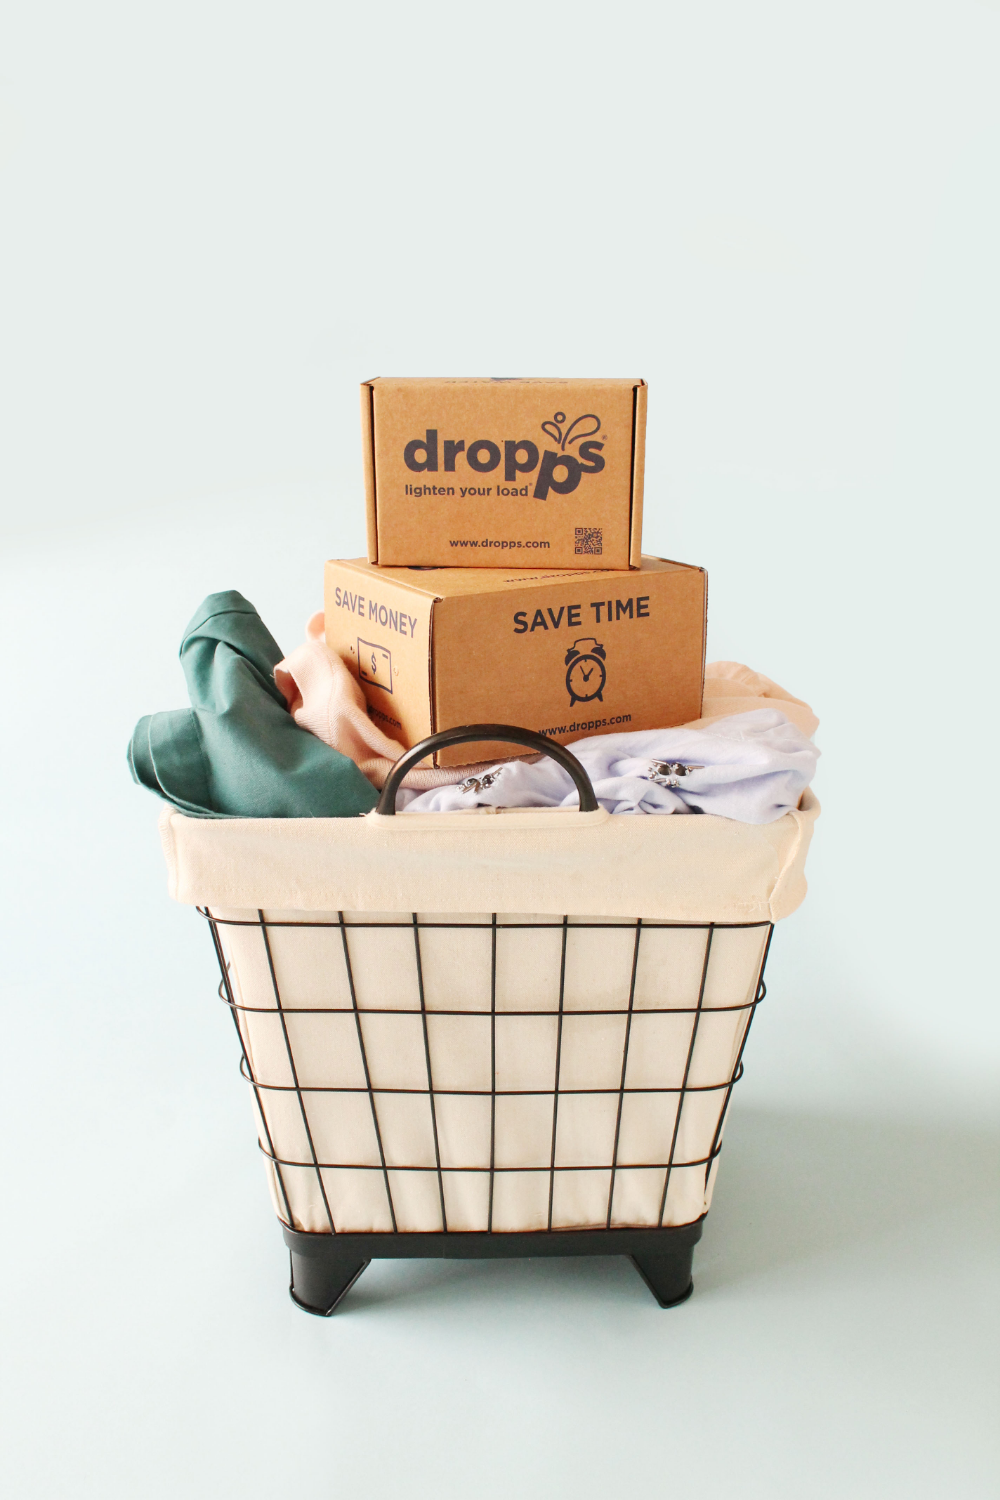 Dropps Sells Sustainable Detergent Pods Without All The Plastic